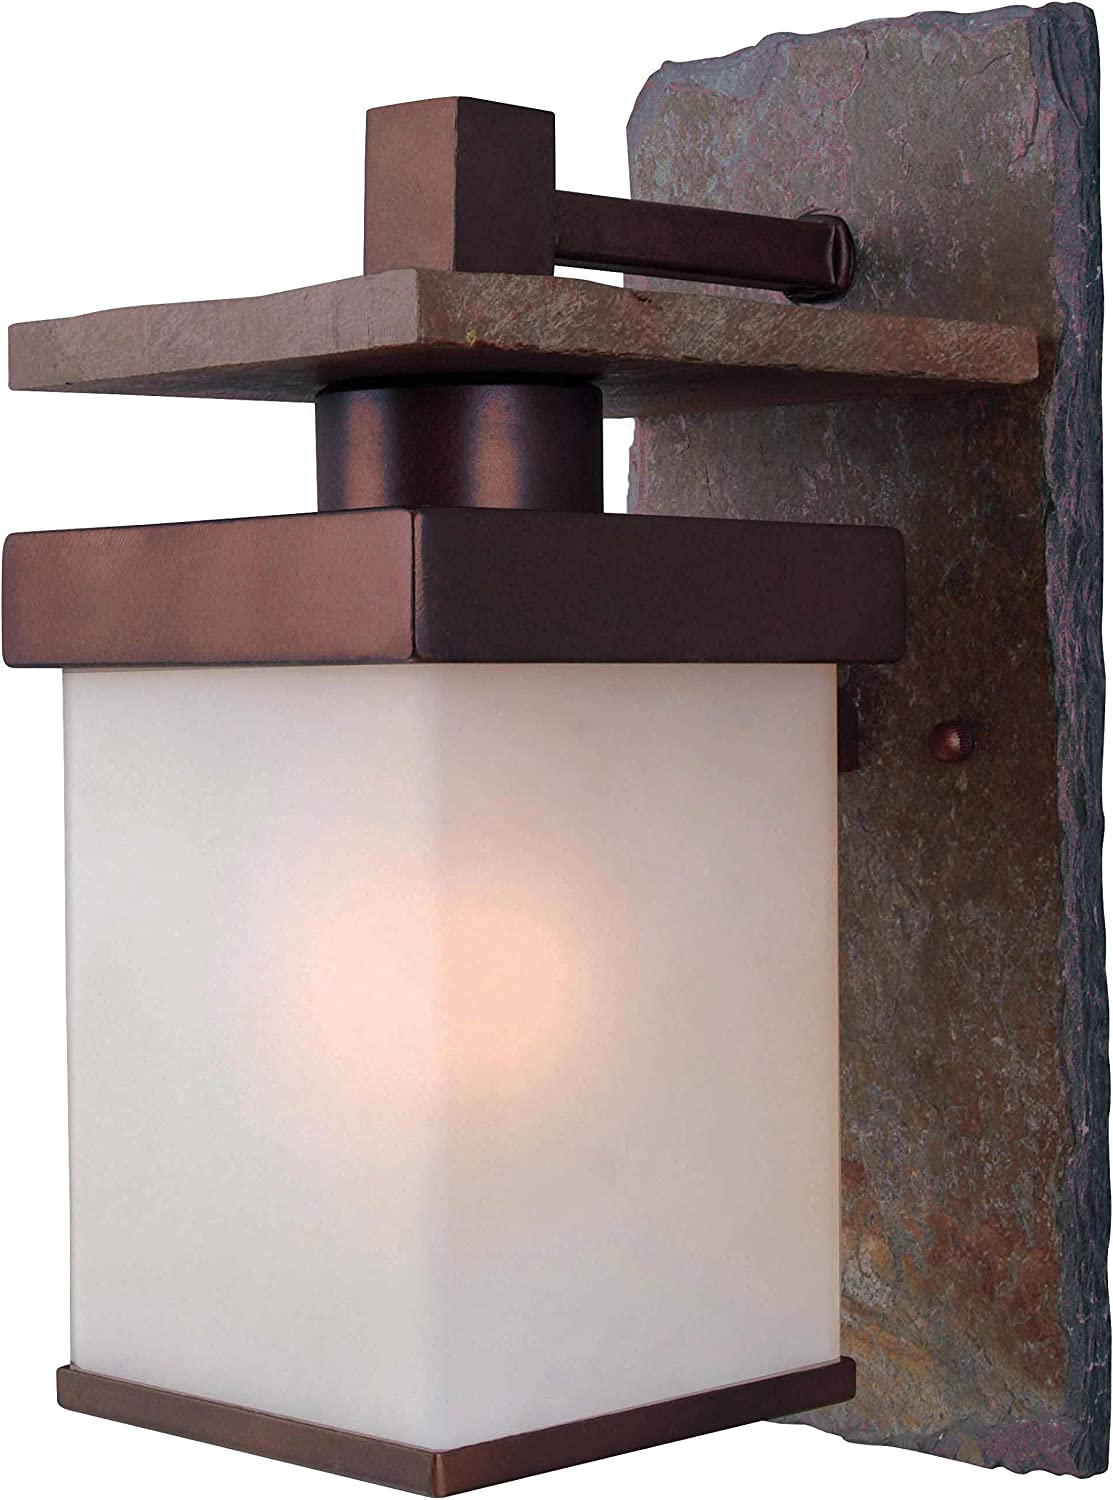 Kenroy Home 70281COP Rustic Boulder Outdoor Wall Light, 1 Small Lantern, Natural Slate with Copper Finish